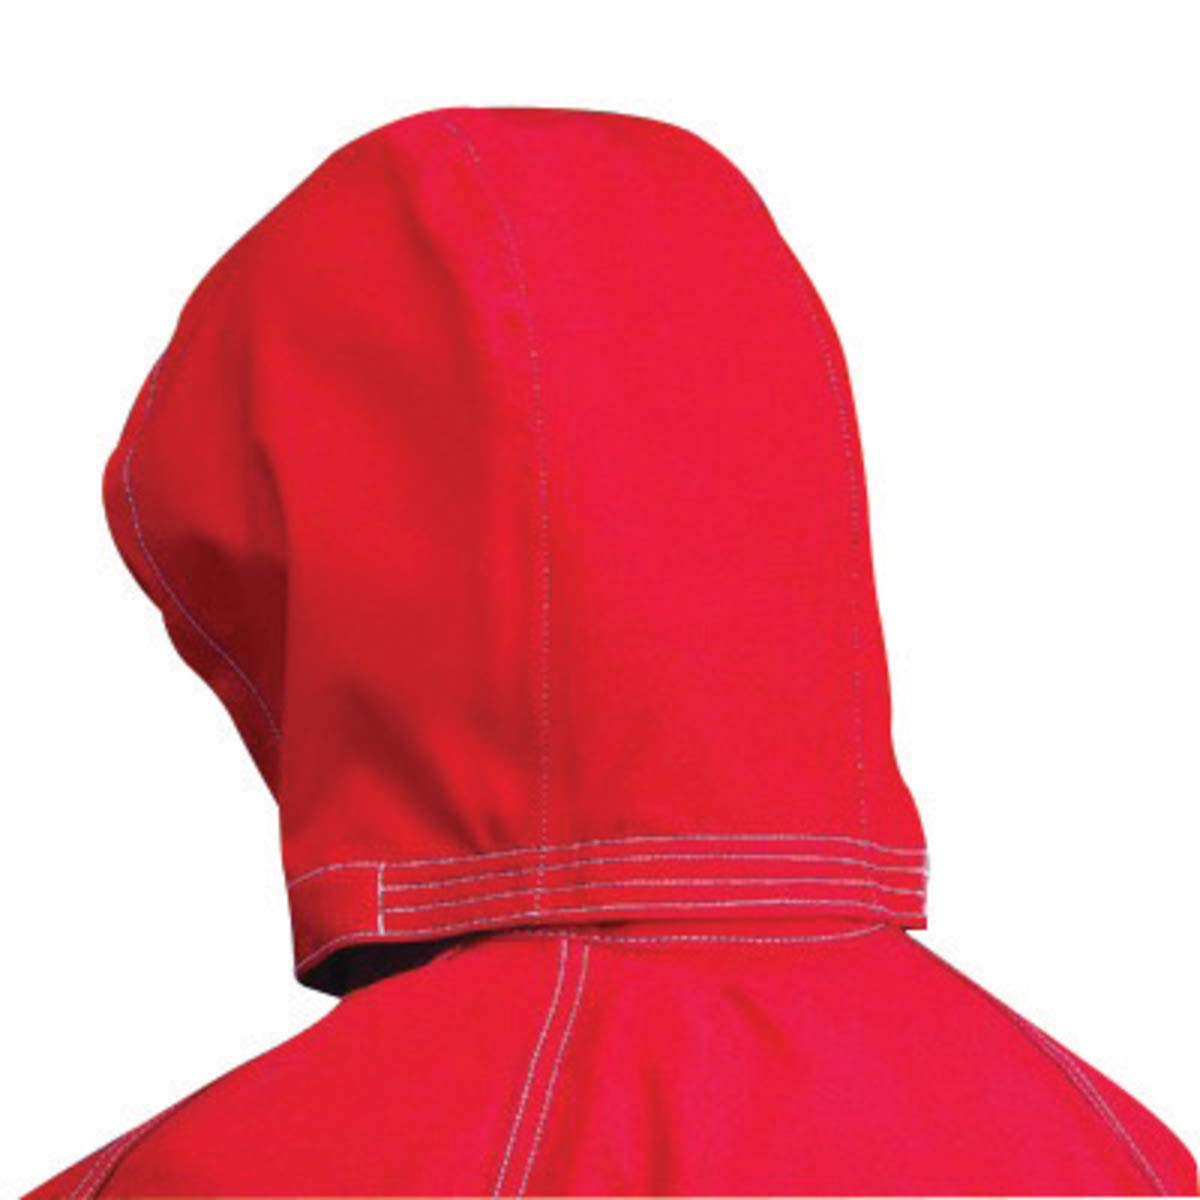 Ansell One Size Fits All Red Sawyer-Tower CPC Polyester Trilaminate Gore Fabric 3-Piece Chemical Splash Protection Hood